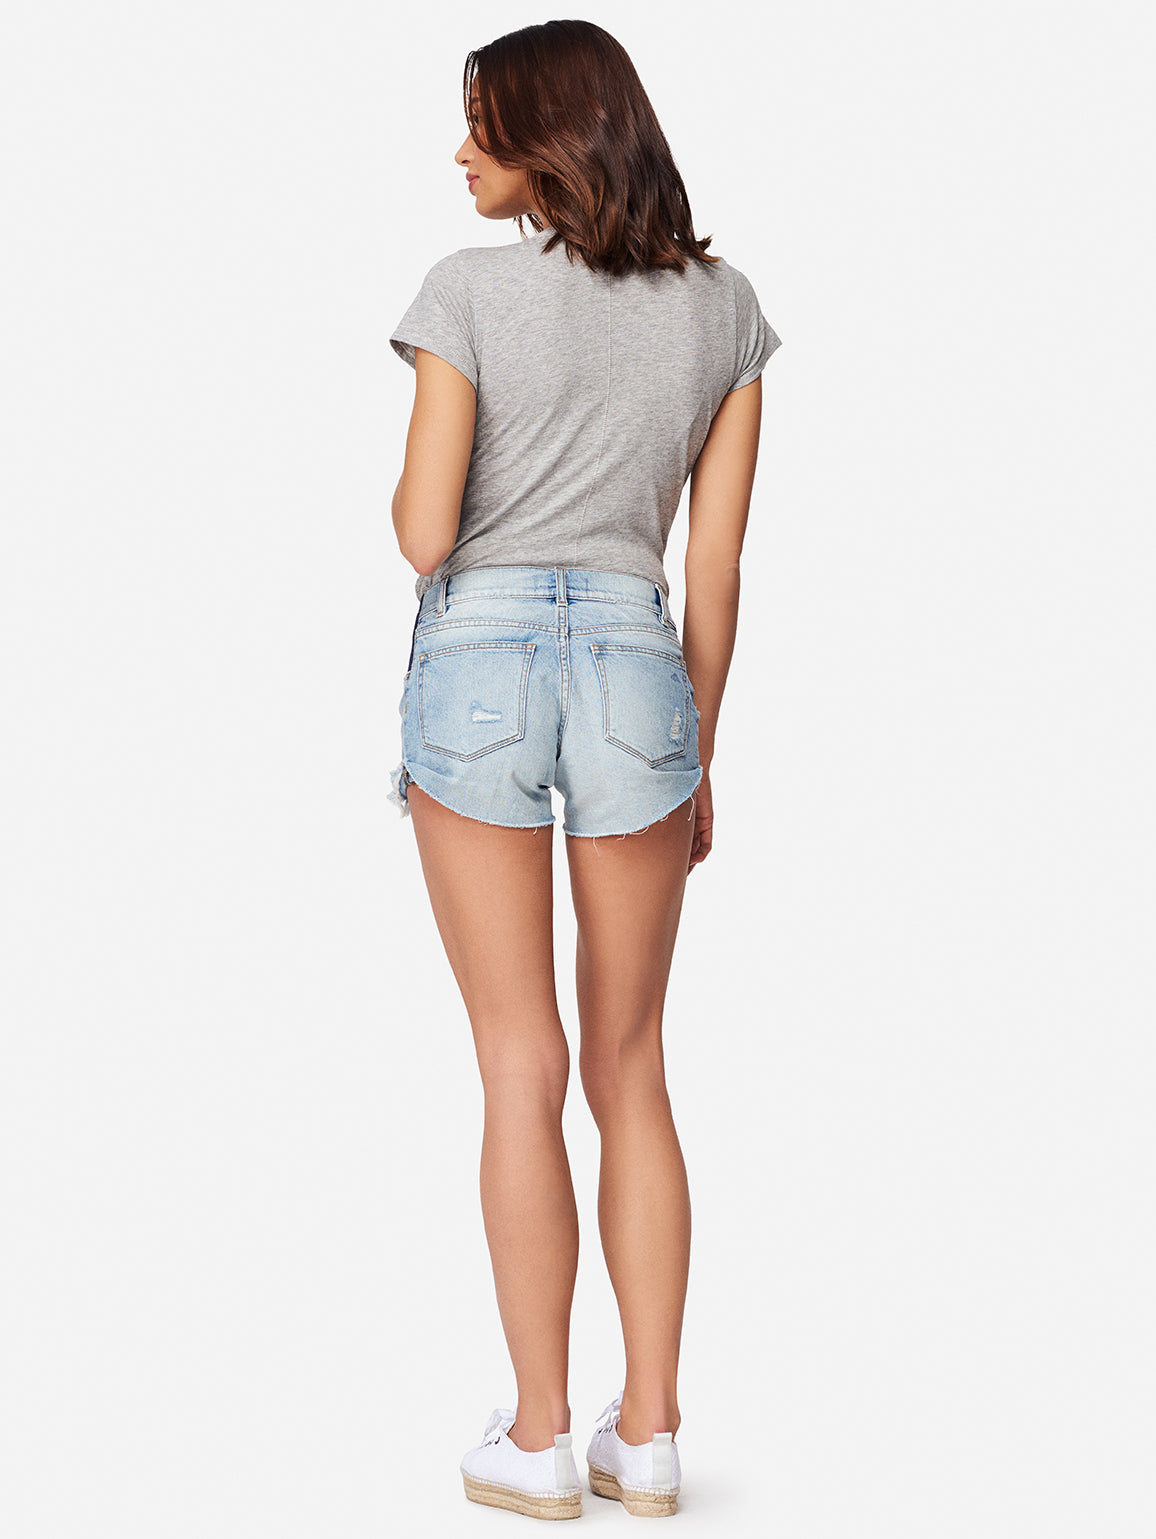 Karlie Maternity Short | Westside DL 1961 Denim